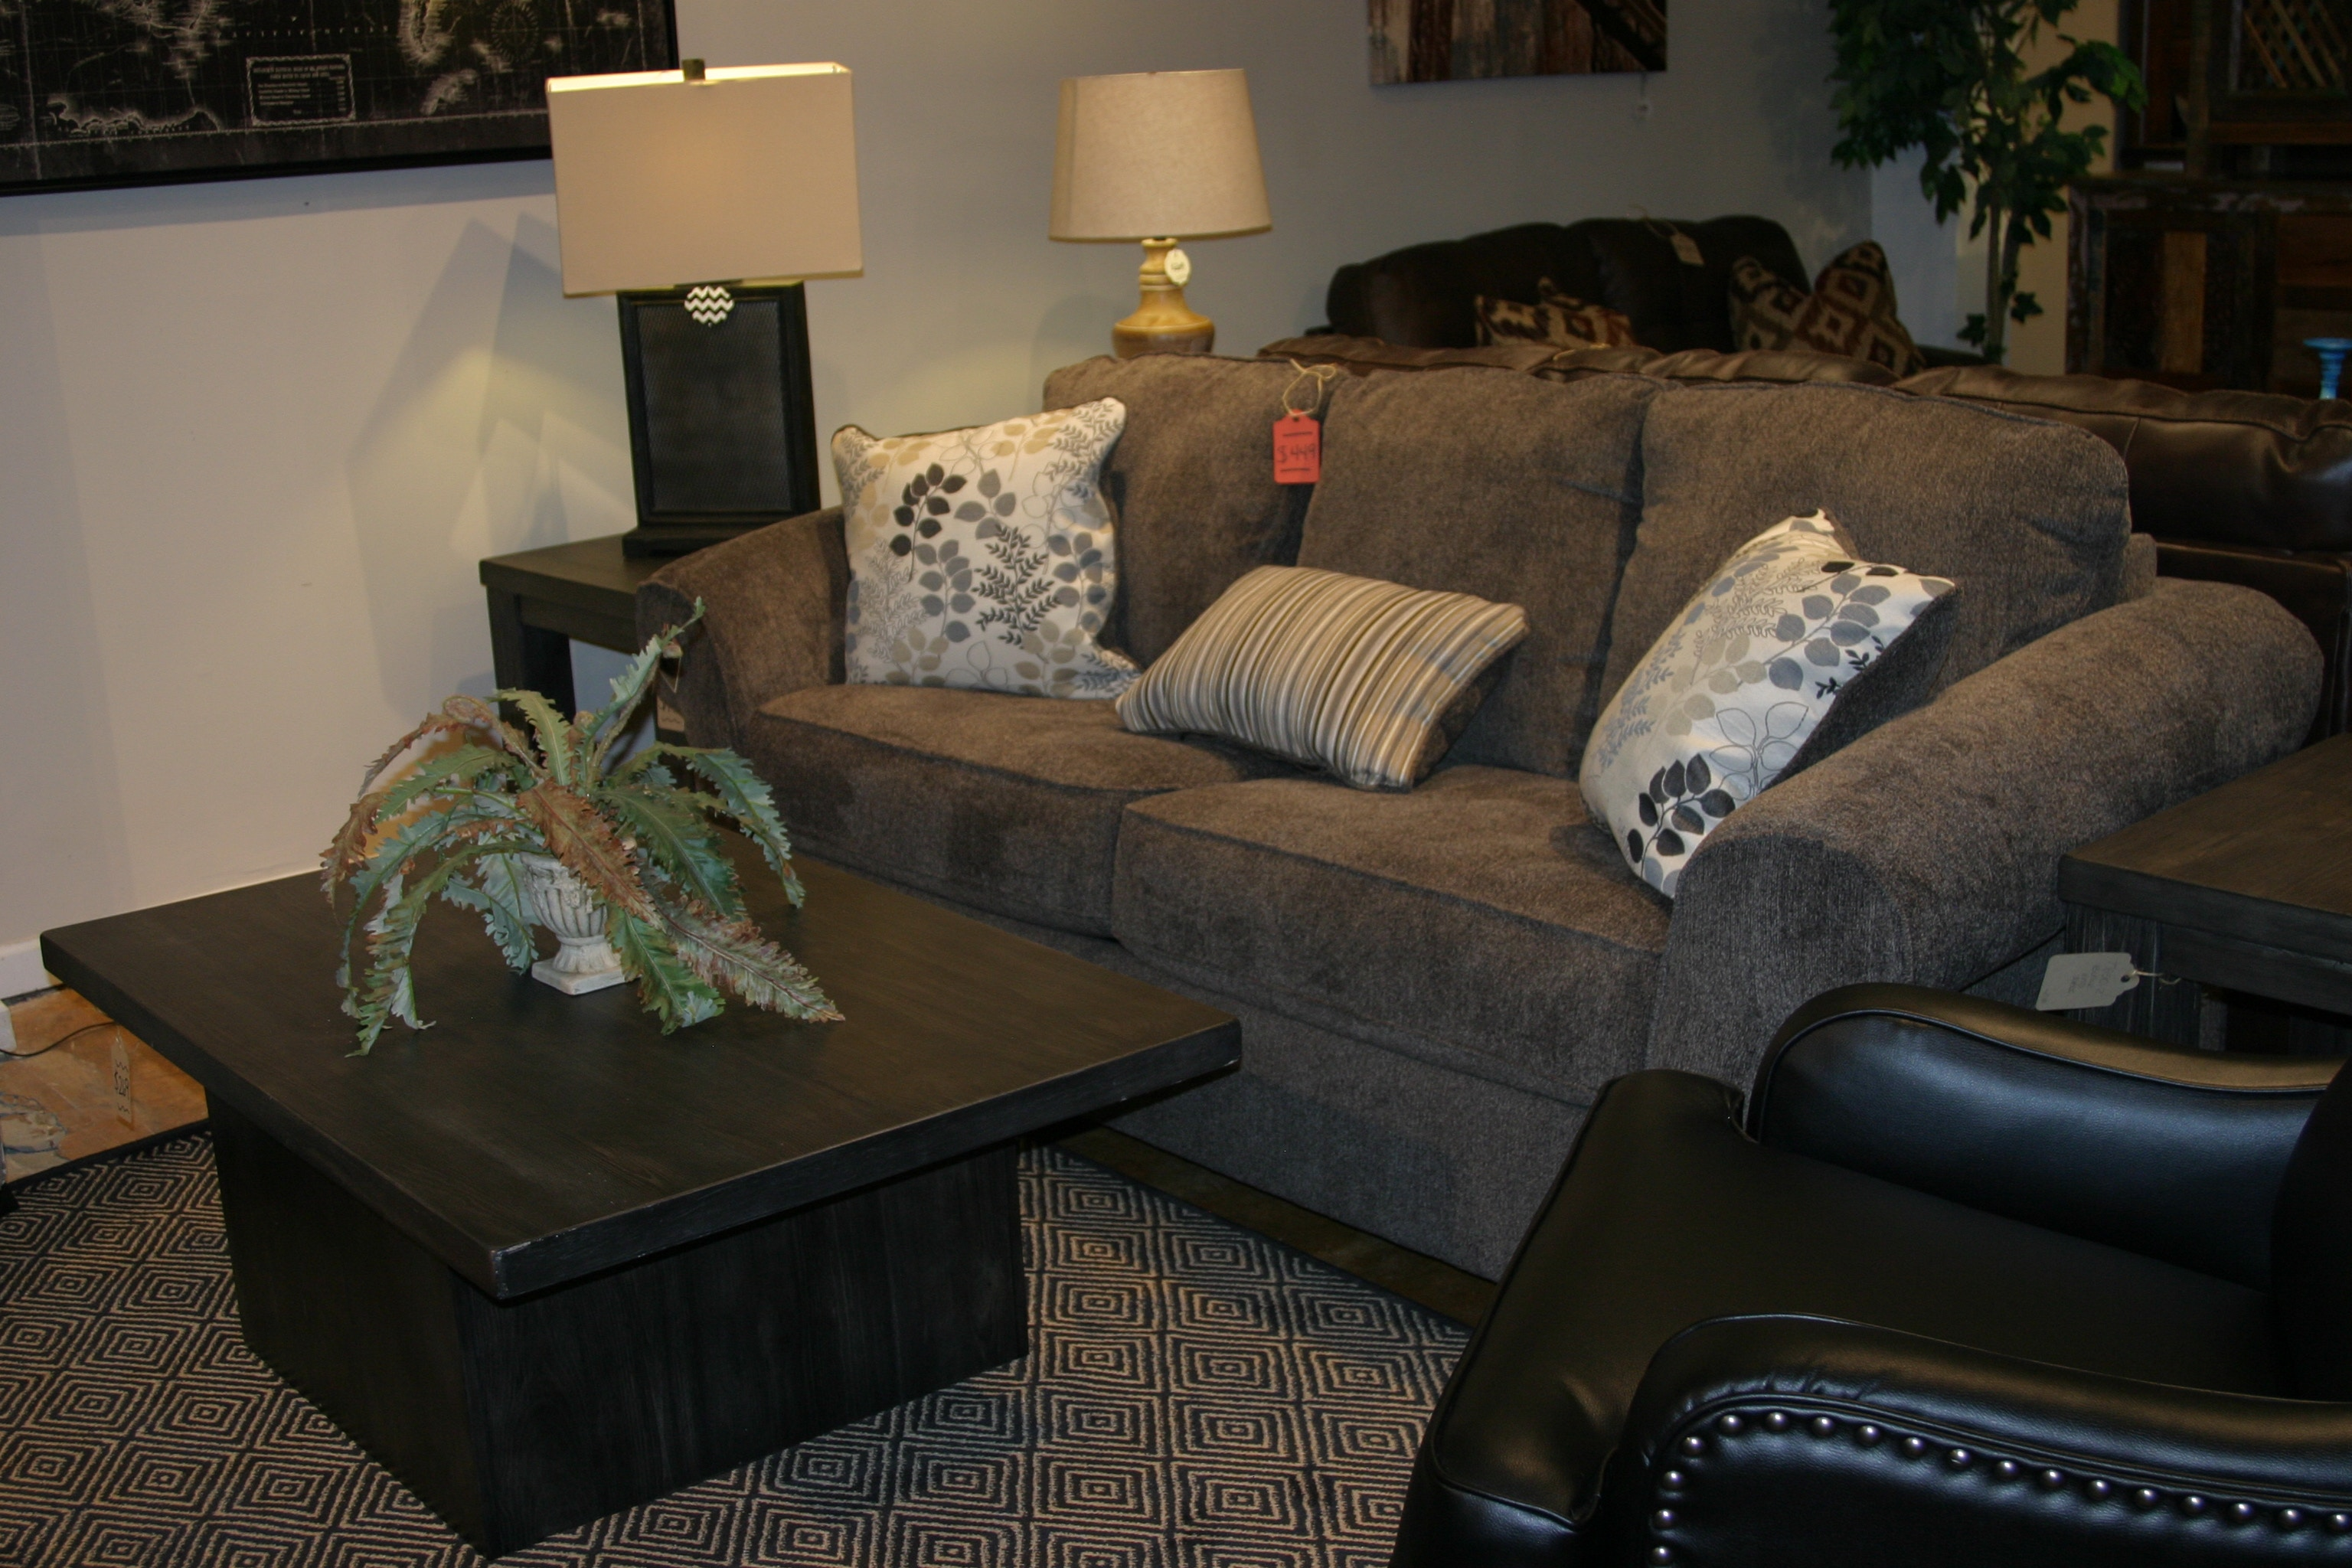 Living Room Sofa At Simply Home By Lindyu0027s Furniture (SKU: 7800038) Is  Available At Hickory Furniture Mart In Hickory, NC And Nationwide.